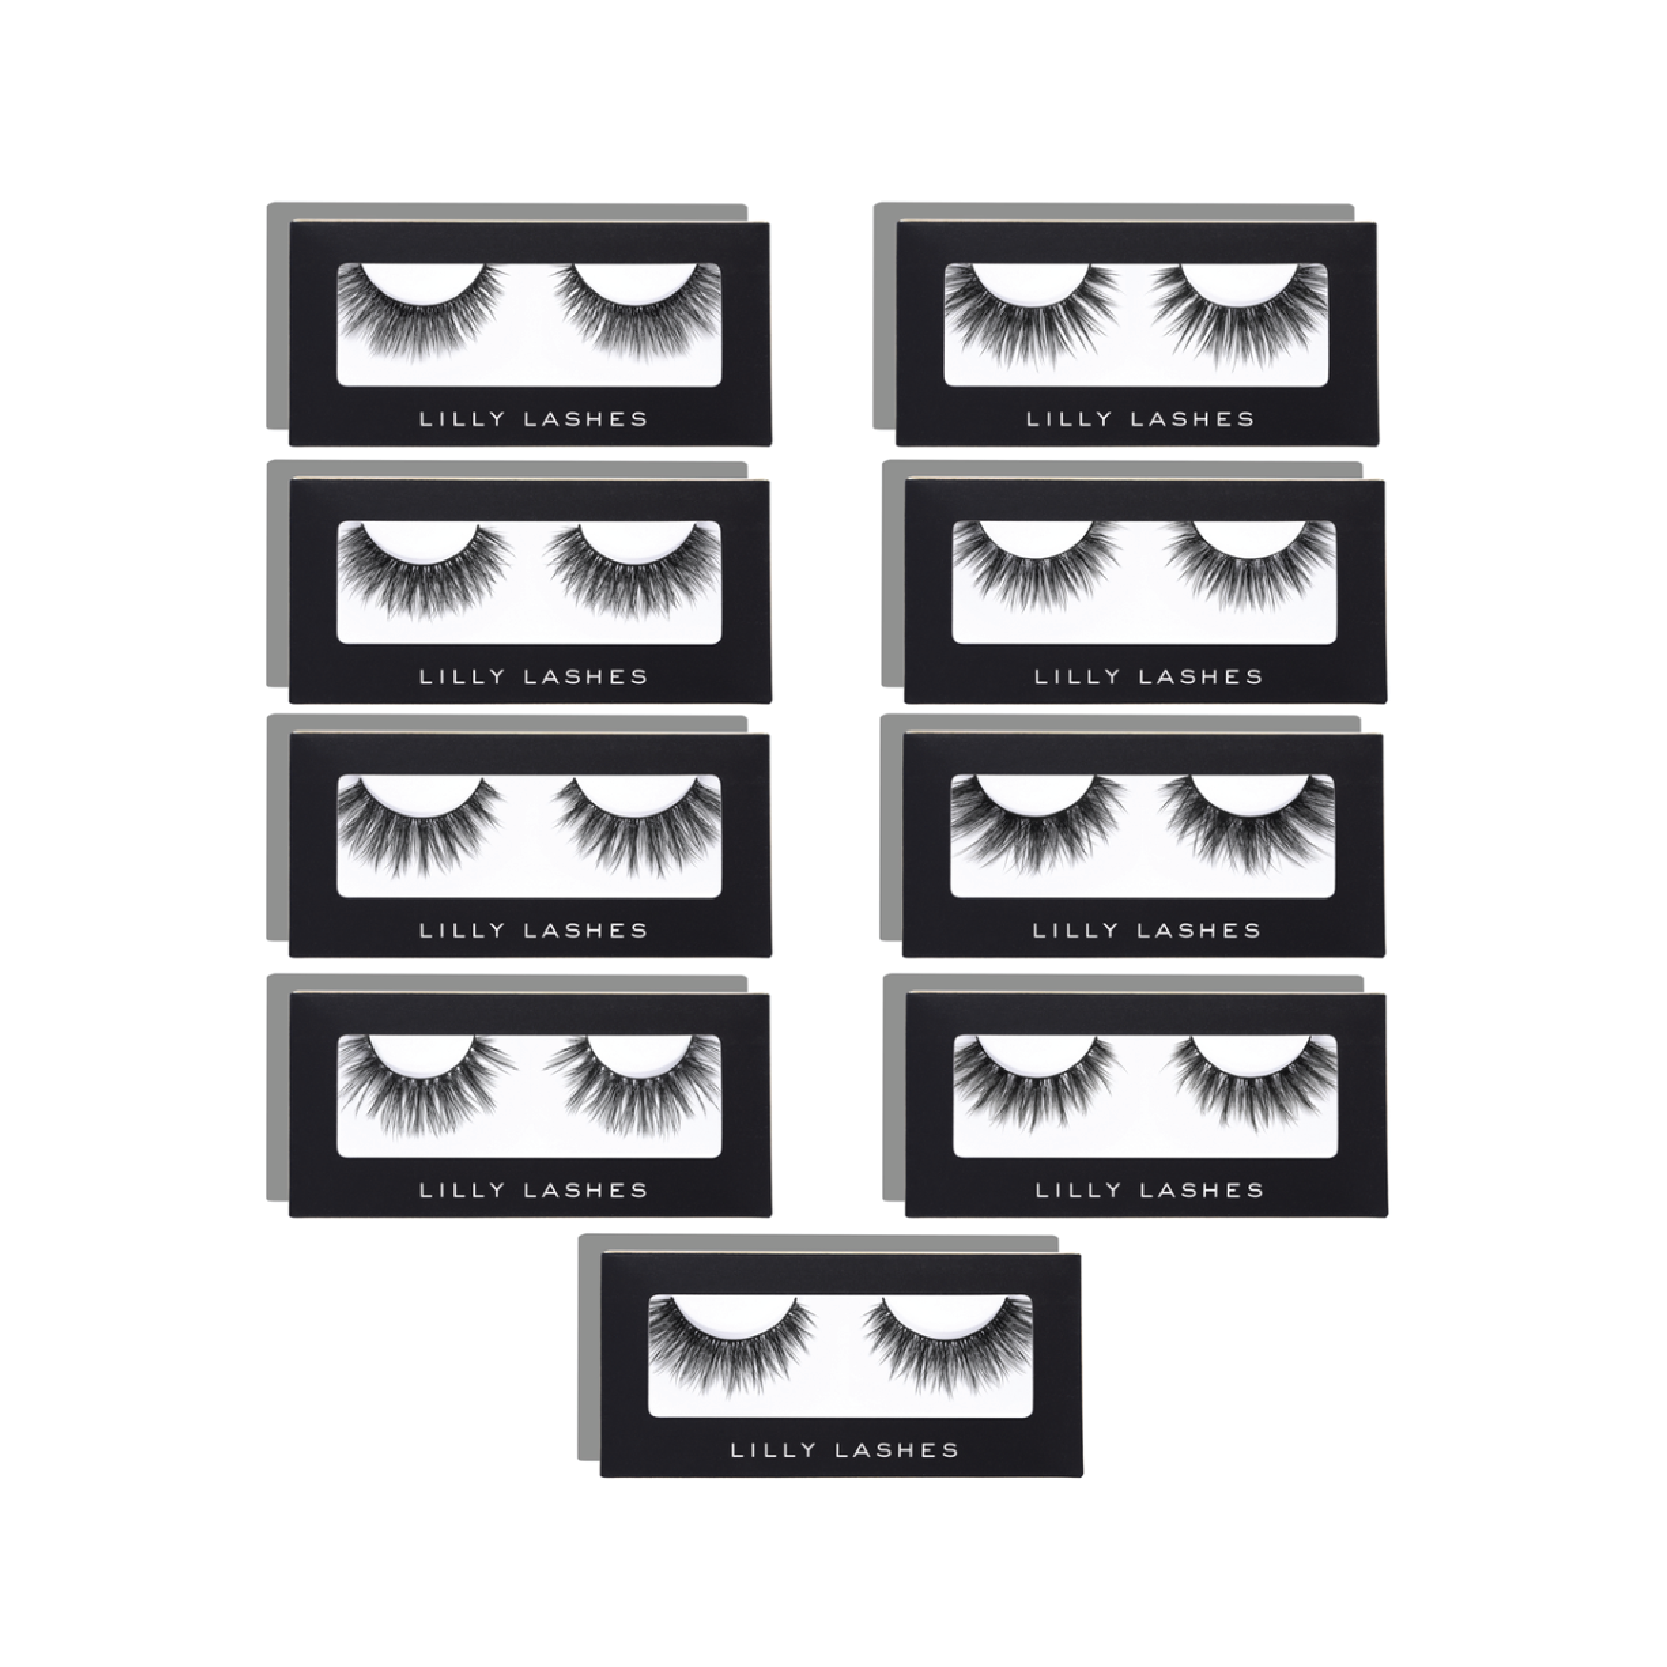 Lilly Lashes Premium Synthetic Full Collection - On sale for $90 at Lilly LashesLilly Lashes is known among celebrities and makeup artists for having some of the most long-lasting and amazing strip lashes. This full collection will easily last someone all year.